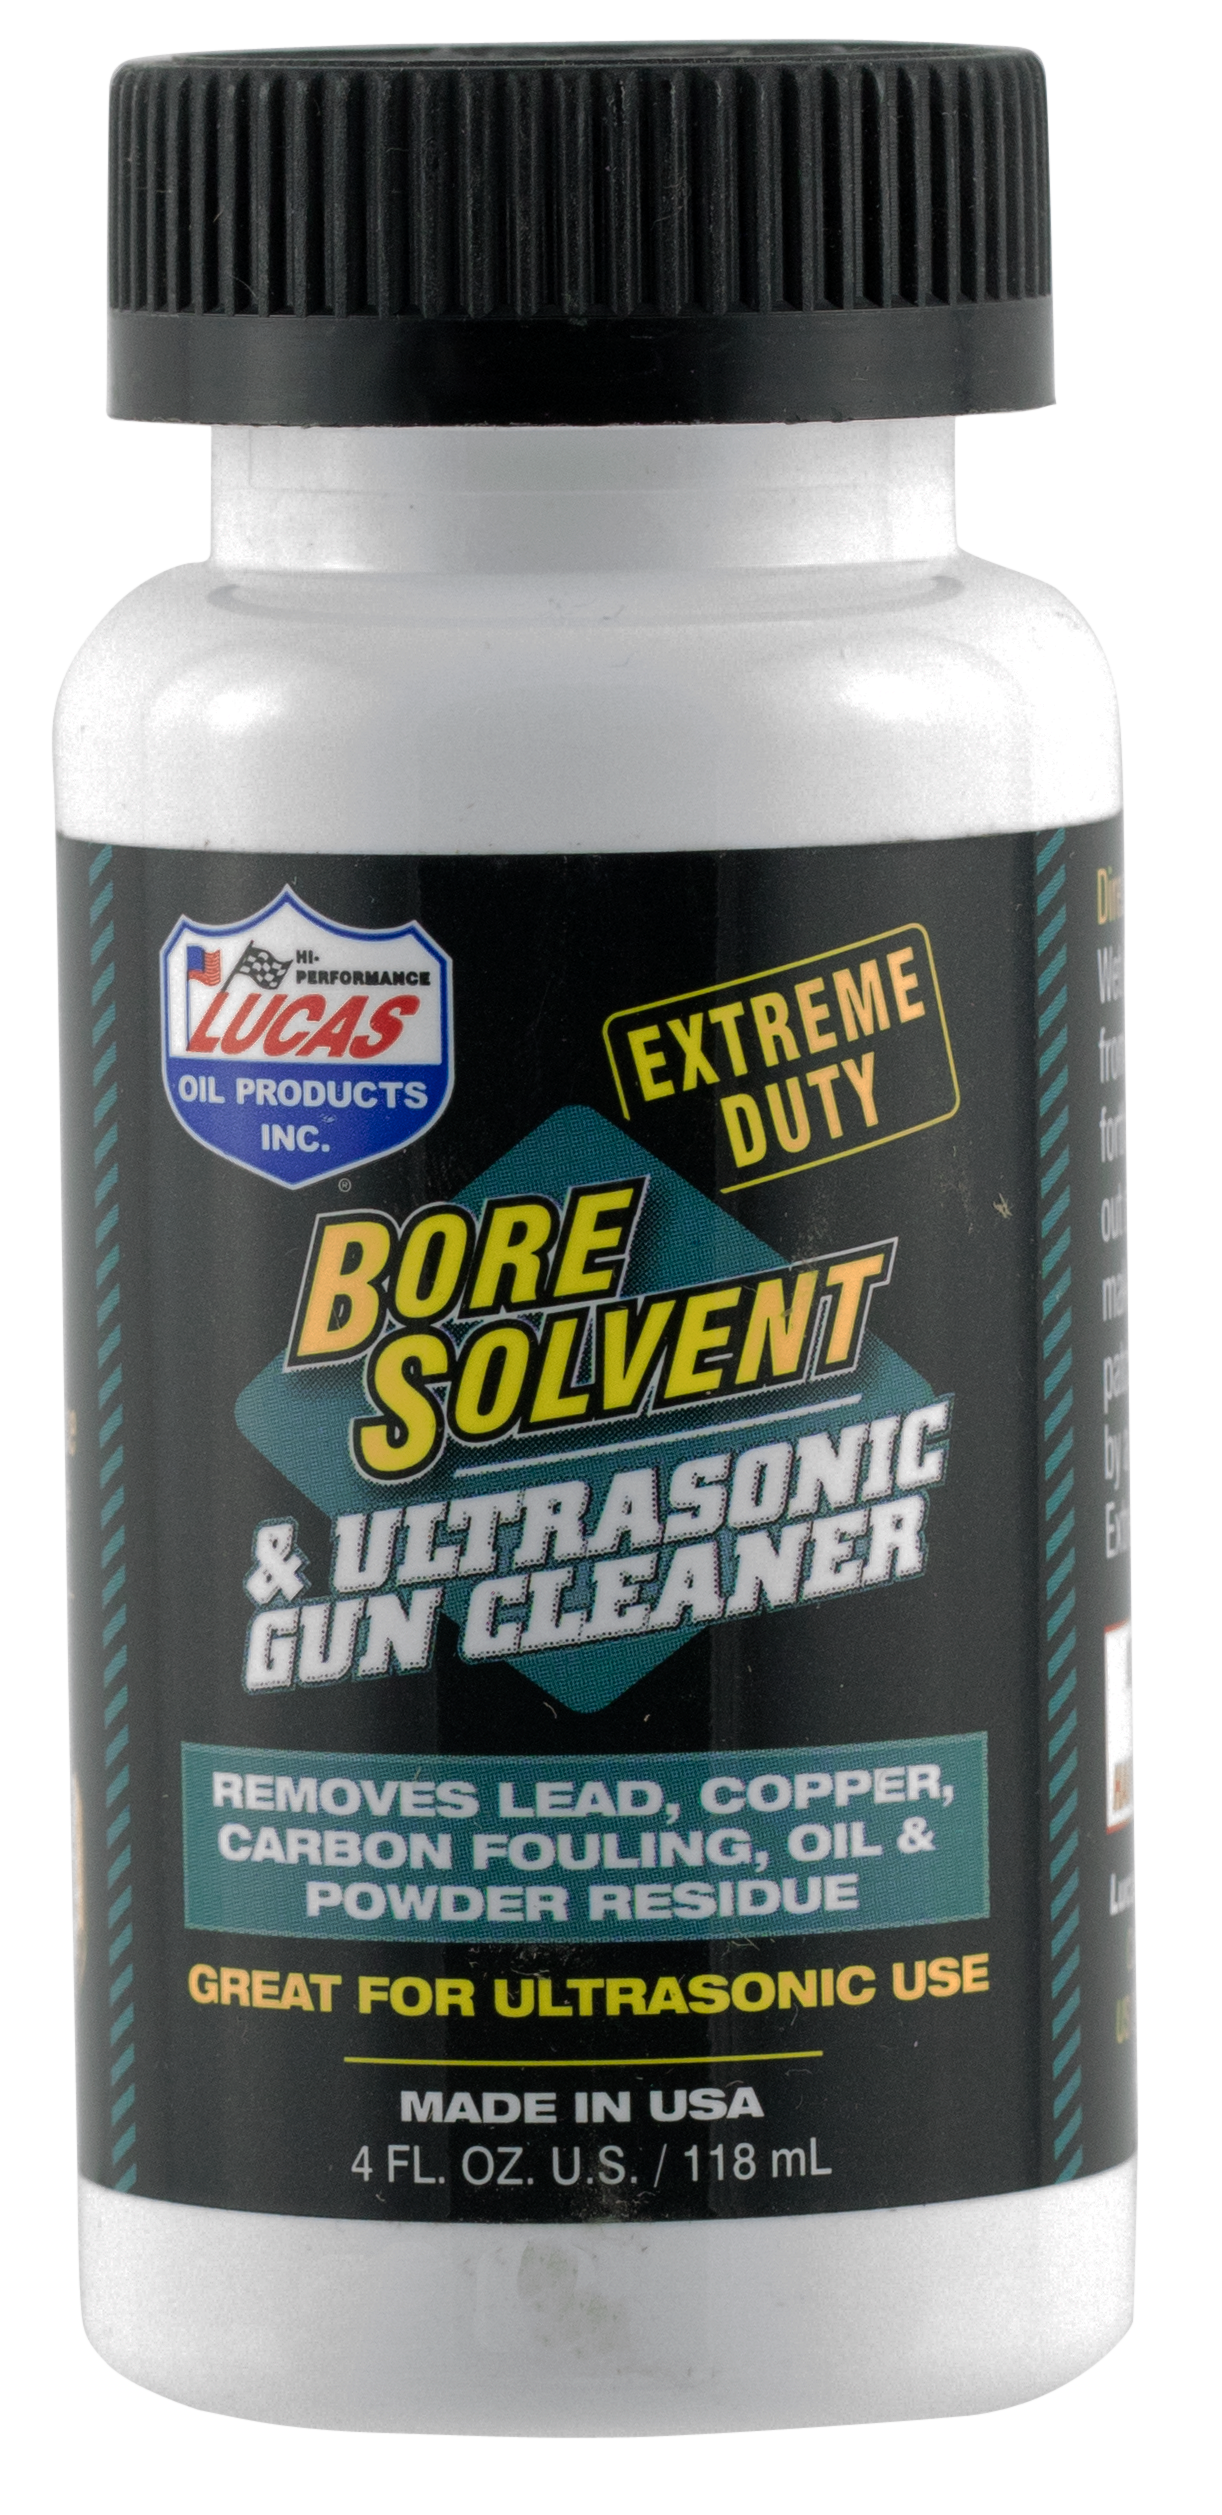 Lucas Oil Extreme Duty Bore Solvent & Cleaner - 4 oz - Liquid